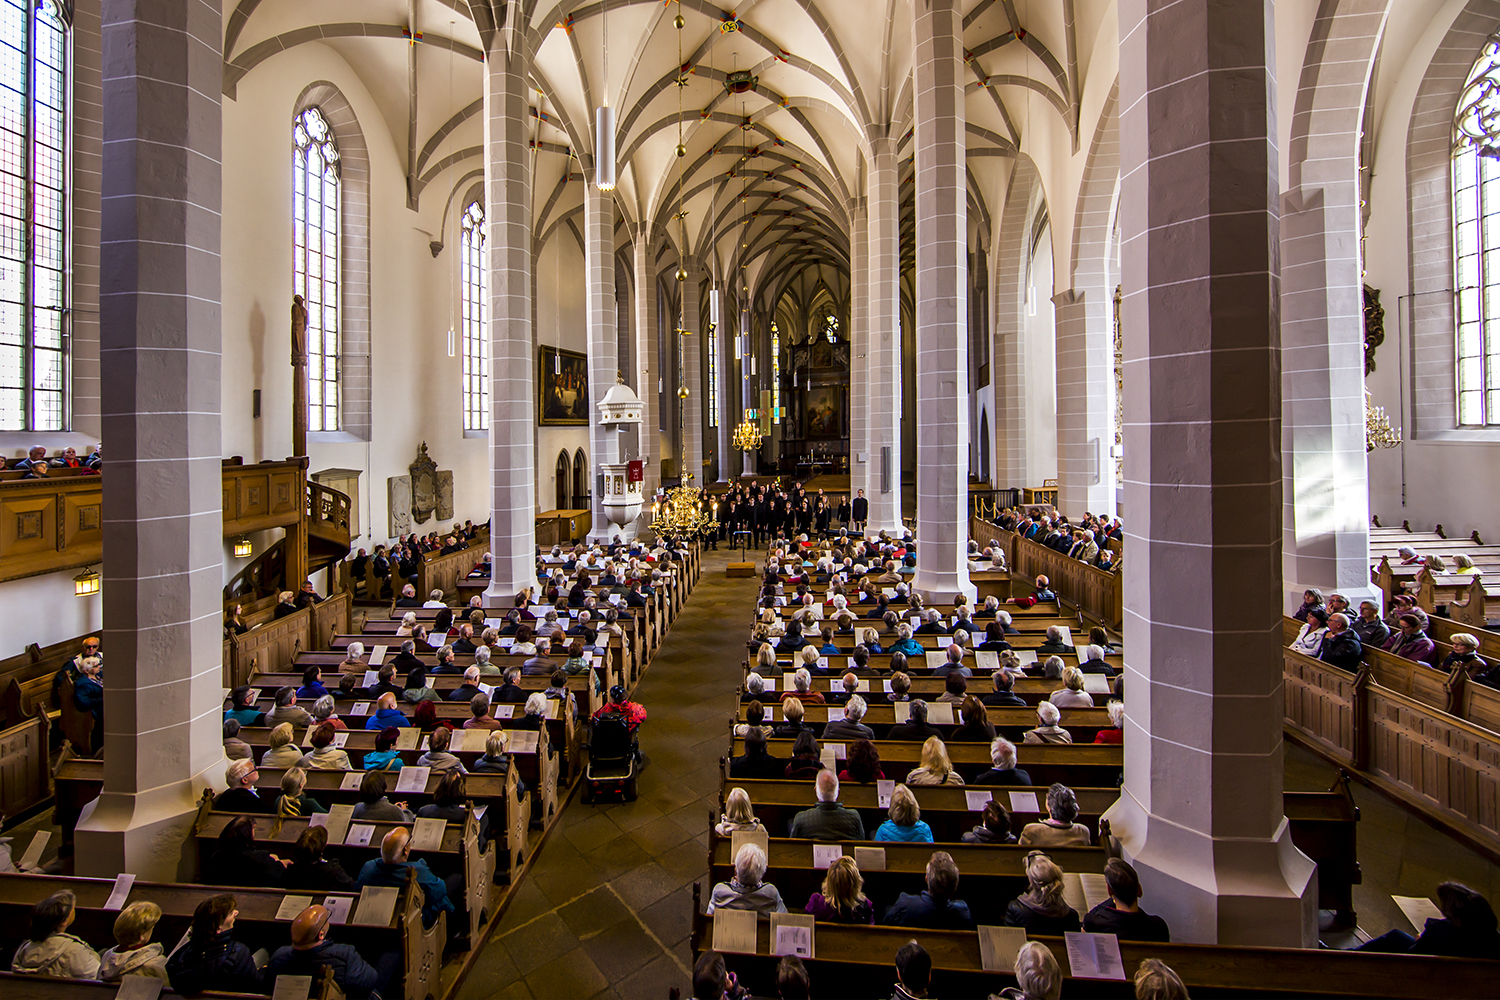 Choir performing to a full audience in a huge cathedral